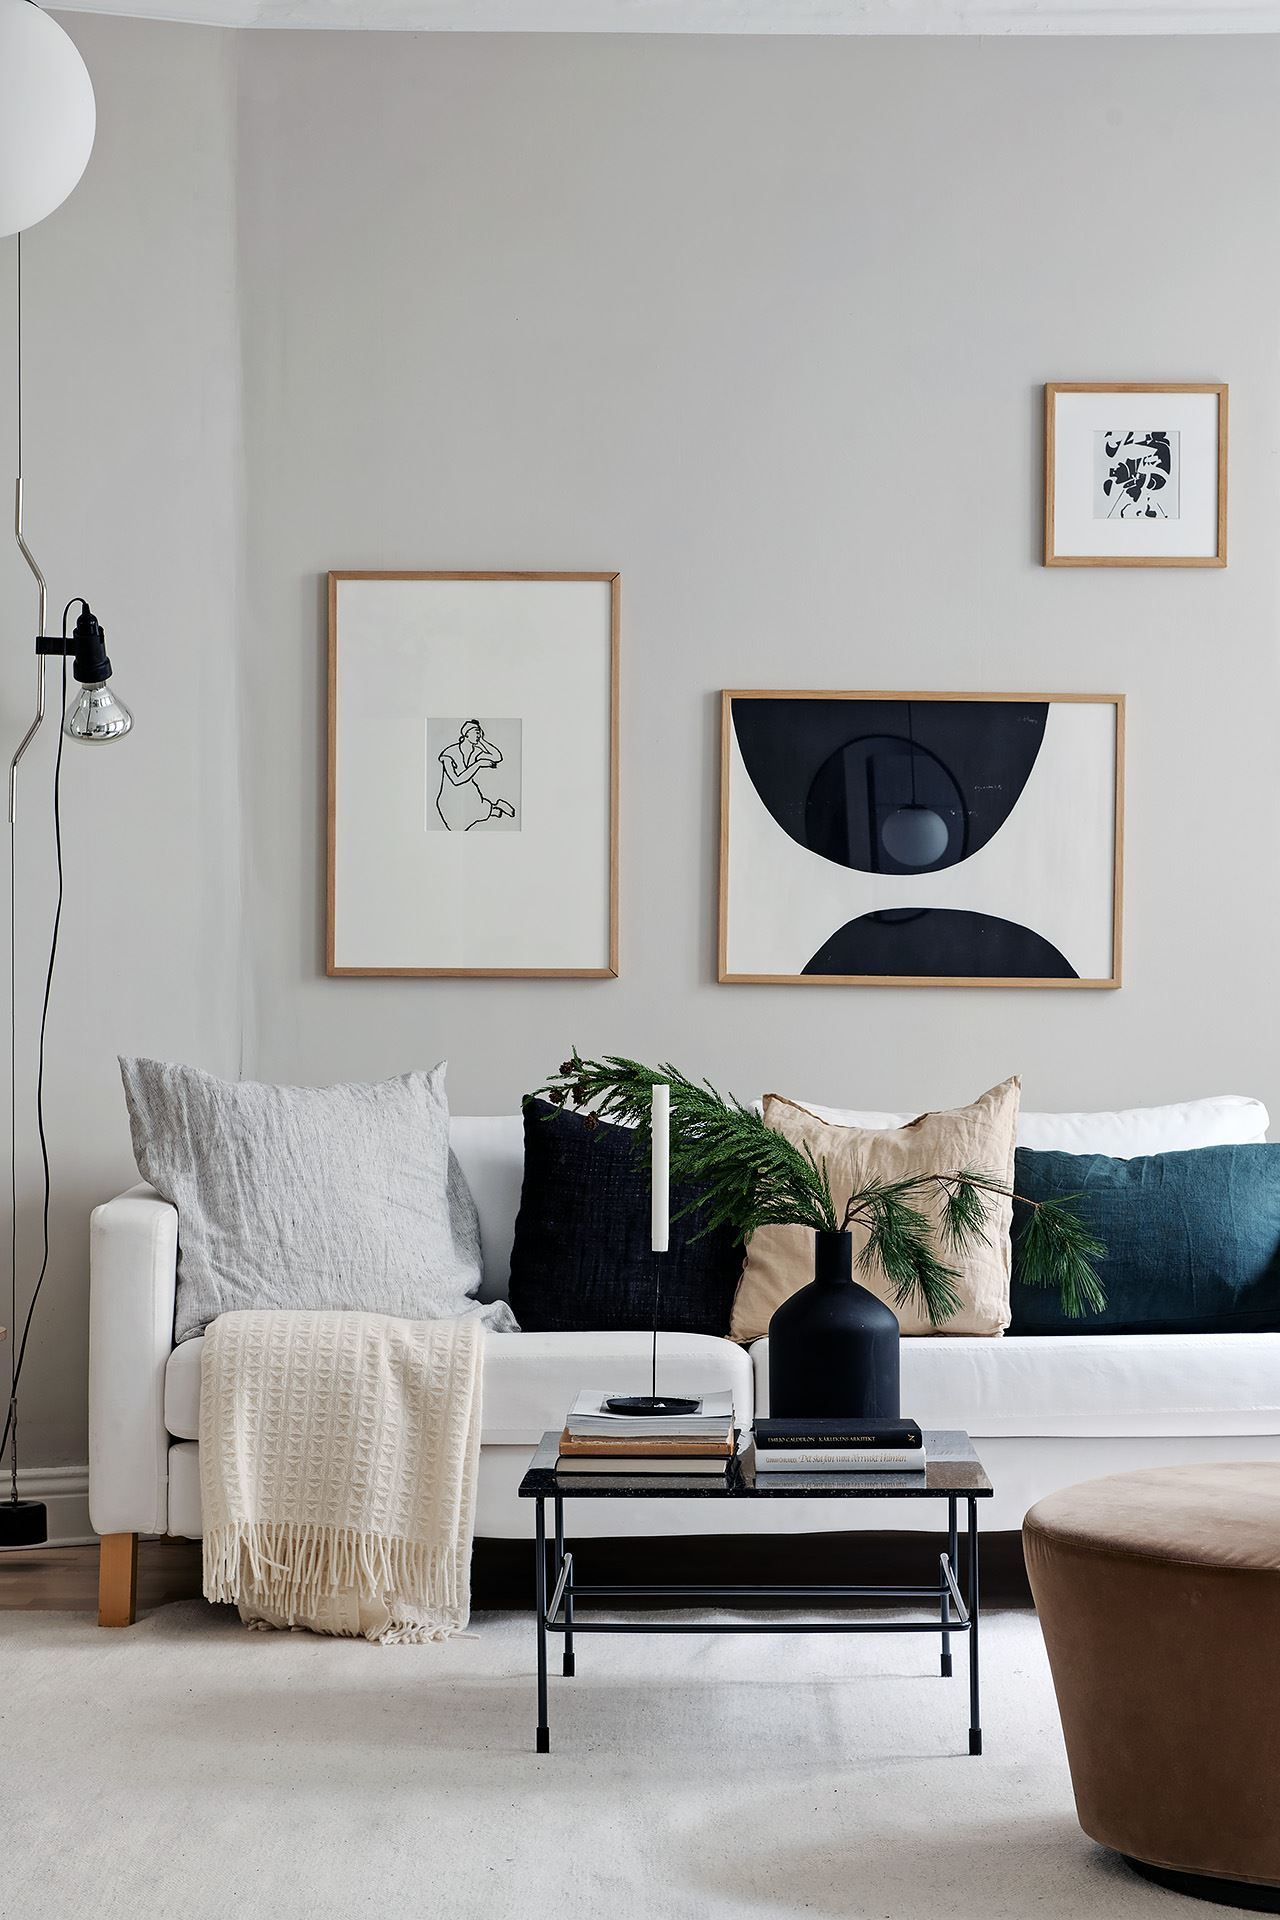 Looking for a trendy new art print? Check out the curated collection from The Poster Club! Styling by@greydecointeriors for @alvhem ⁠.⁠#art #artprint #tpc #theposterclub #interiordesign #nordicdecor #homestyling #artwall #picturewall